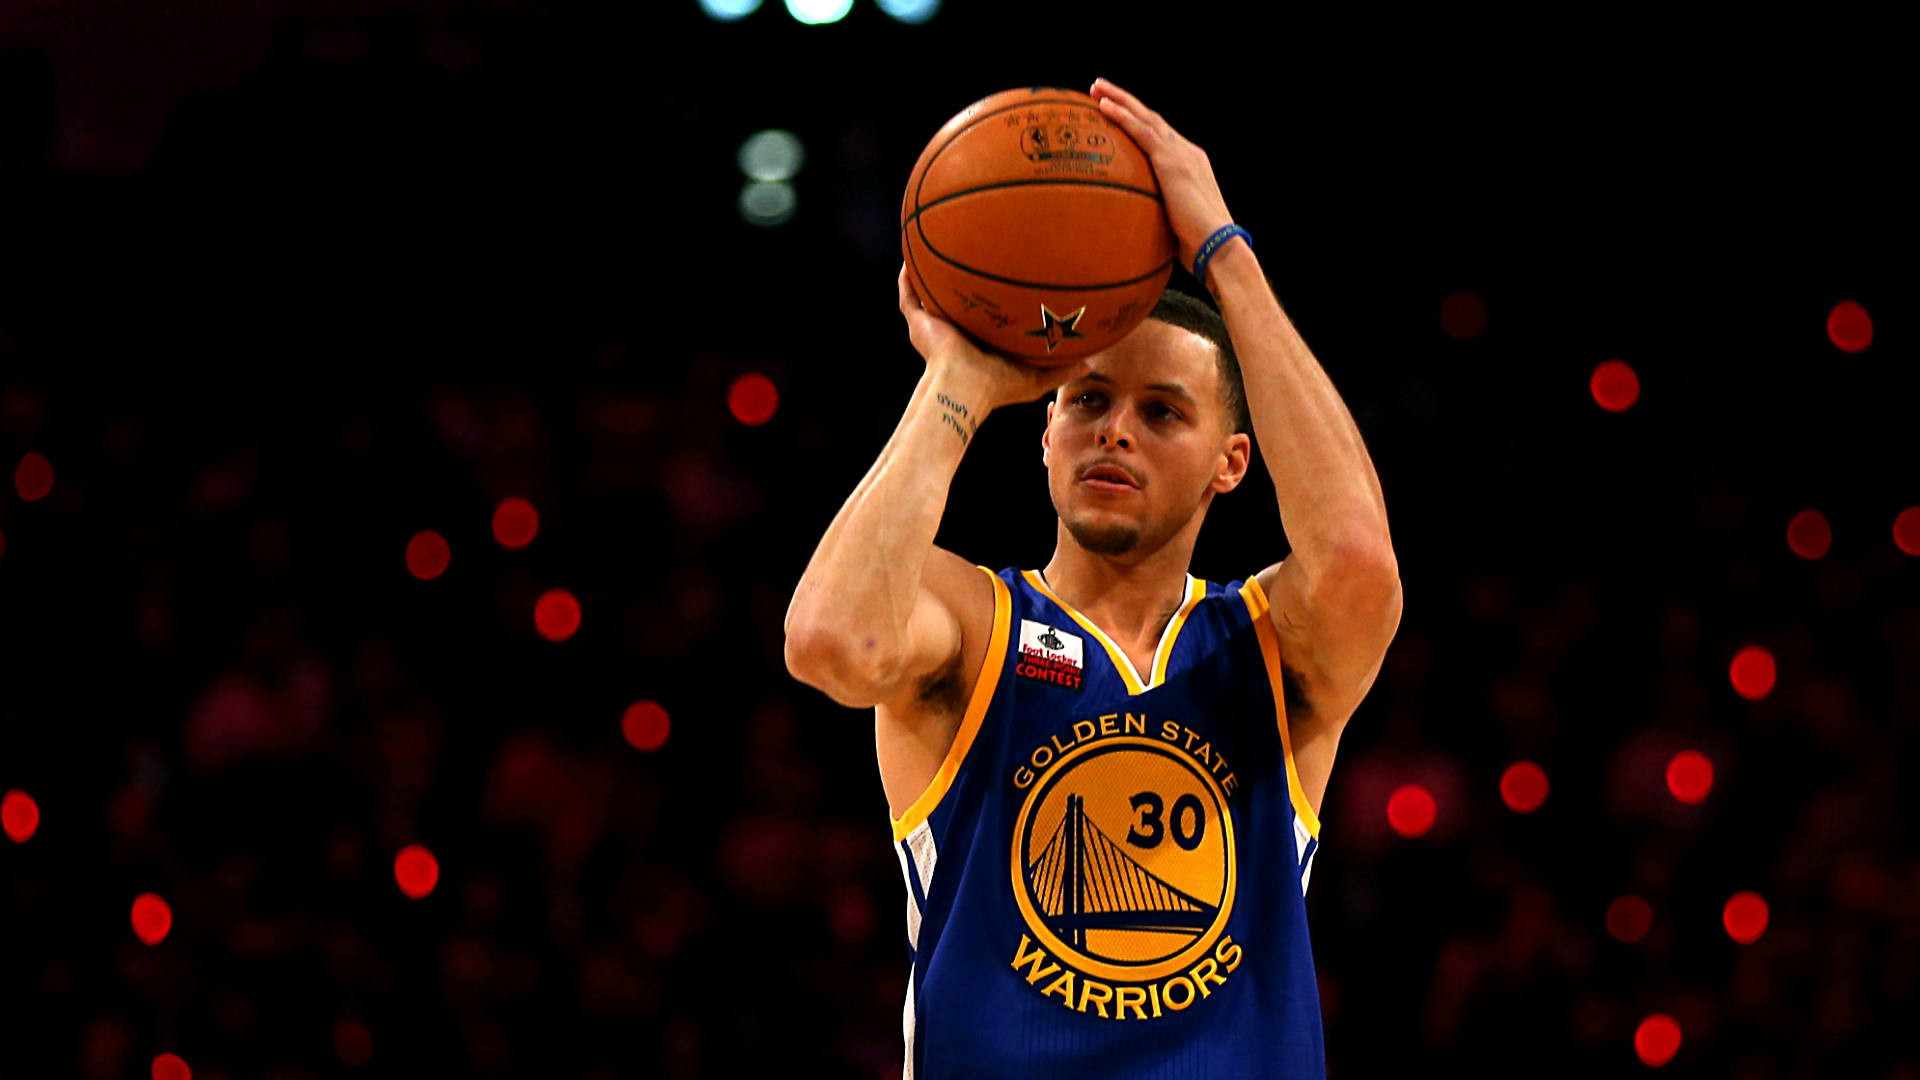 1920x1080 30 BHD B Stephen BCurry Wallpaper